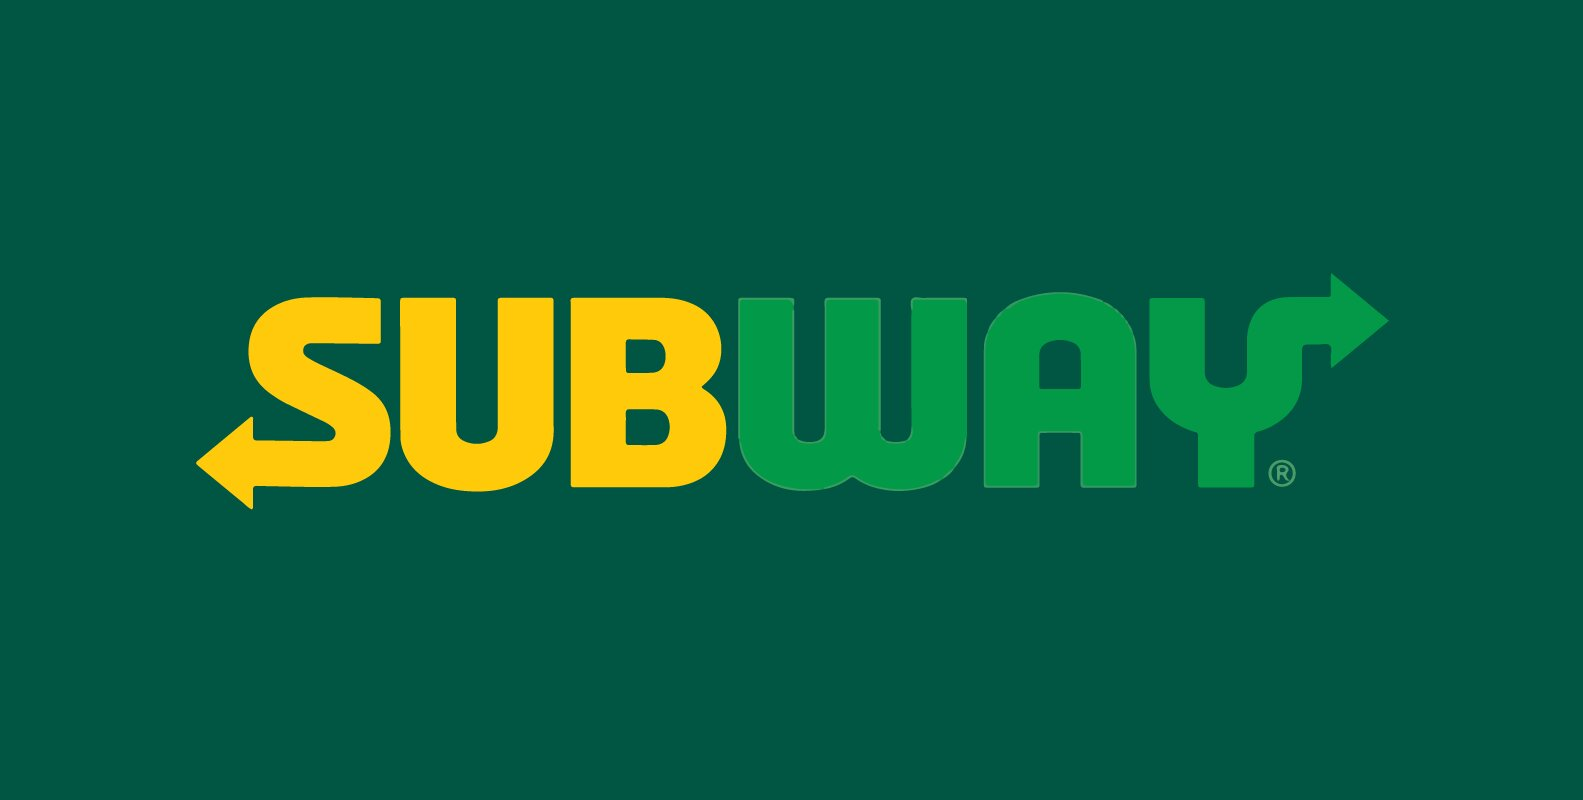 SubWay NewLogo